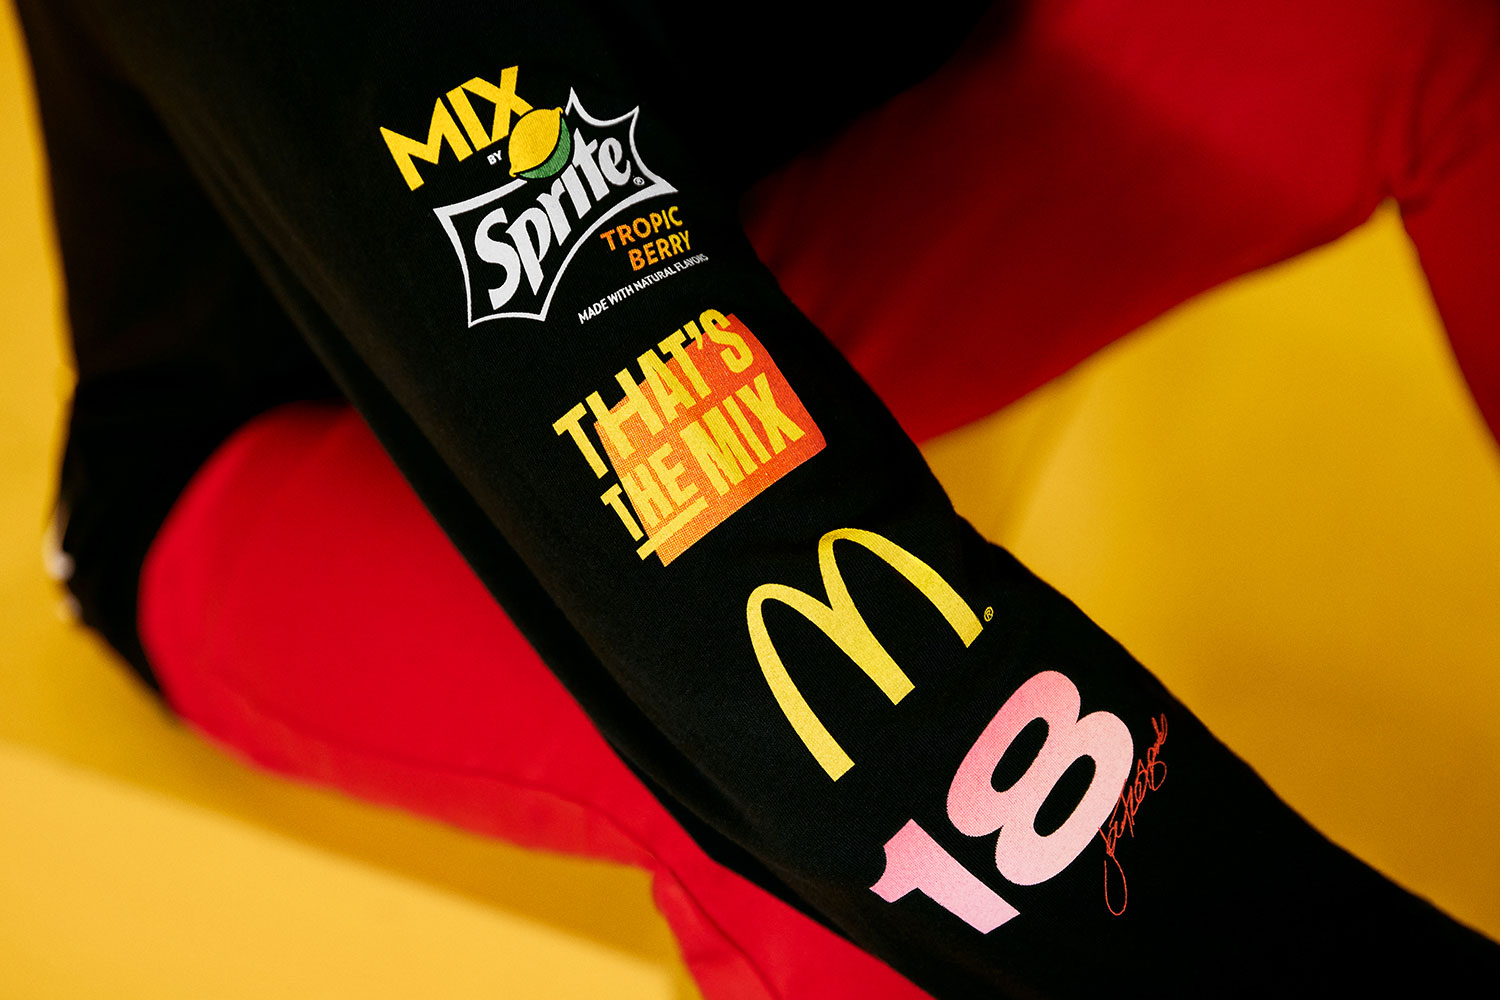 closeup of a black shirt sleeve, showing That's the MIX, MIX by Sprite™ Tropic Berry, McDonald's and Joe Freshgoods logos with number 18